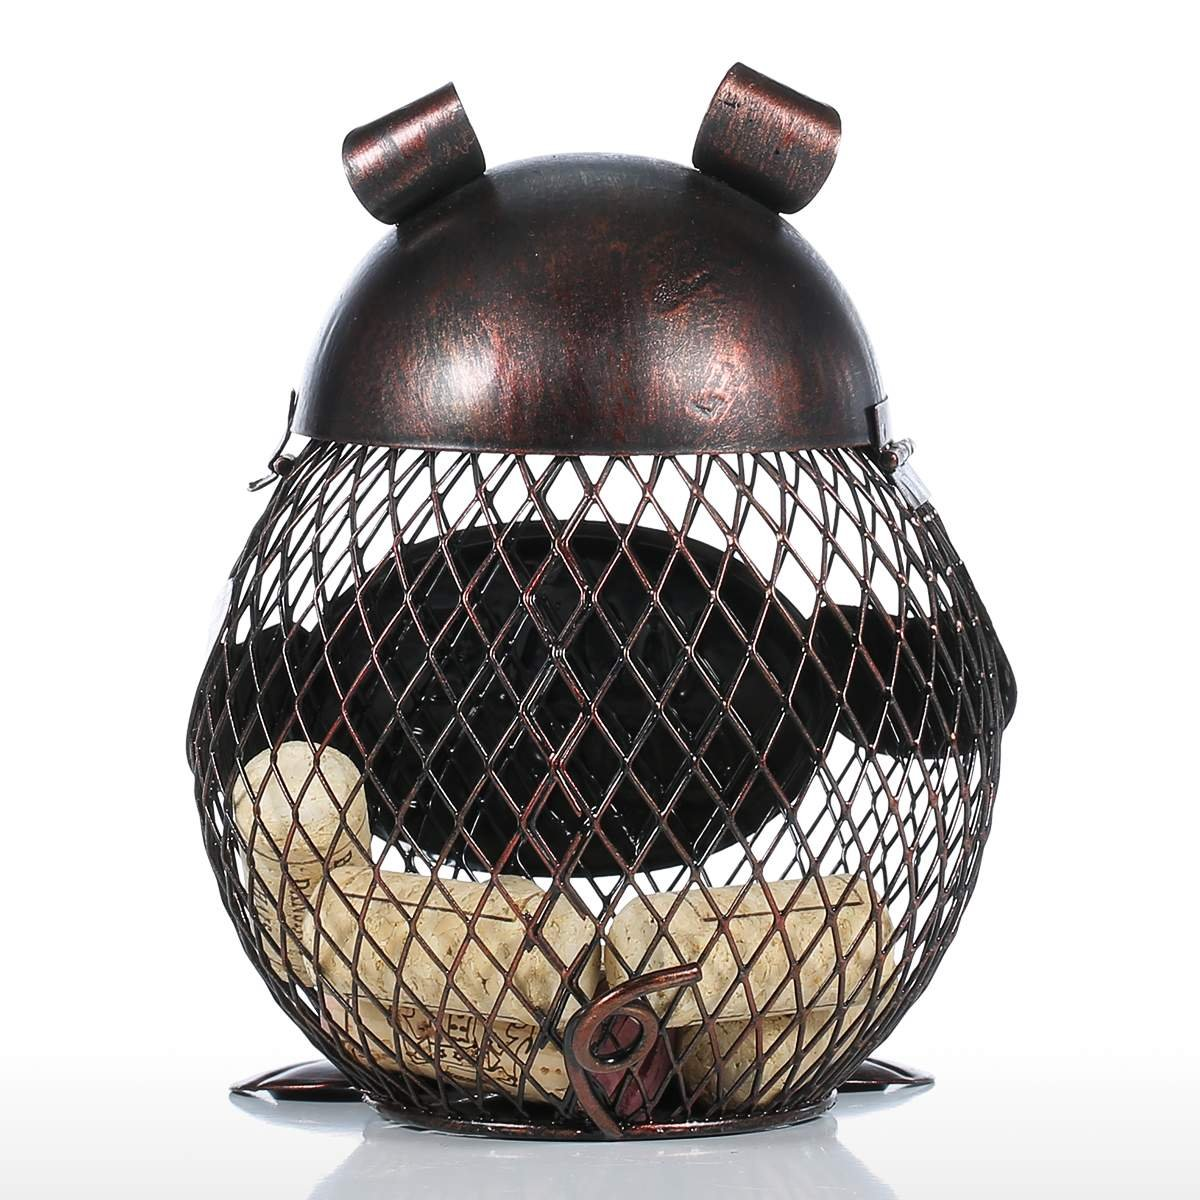 Tooarts Piggy Wine Barrel Cork Cage Container Metal Sculpture Handicraft Gift Home Decor by Tooarts (Image #3)